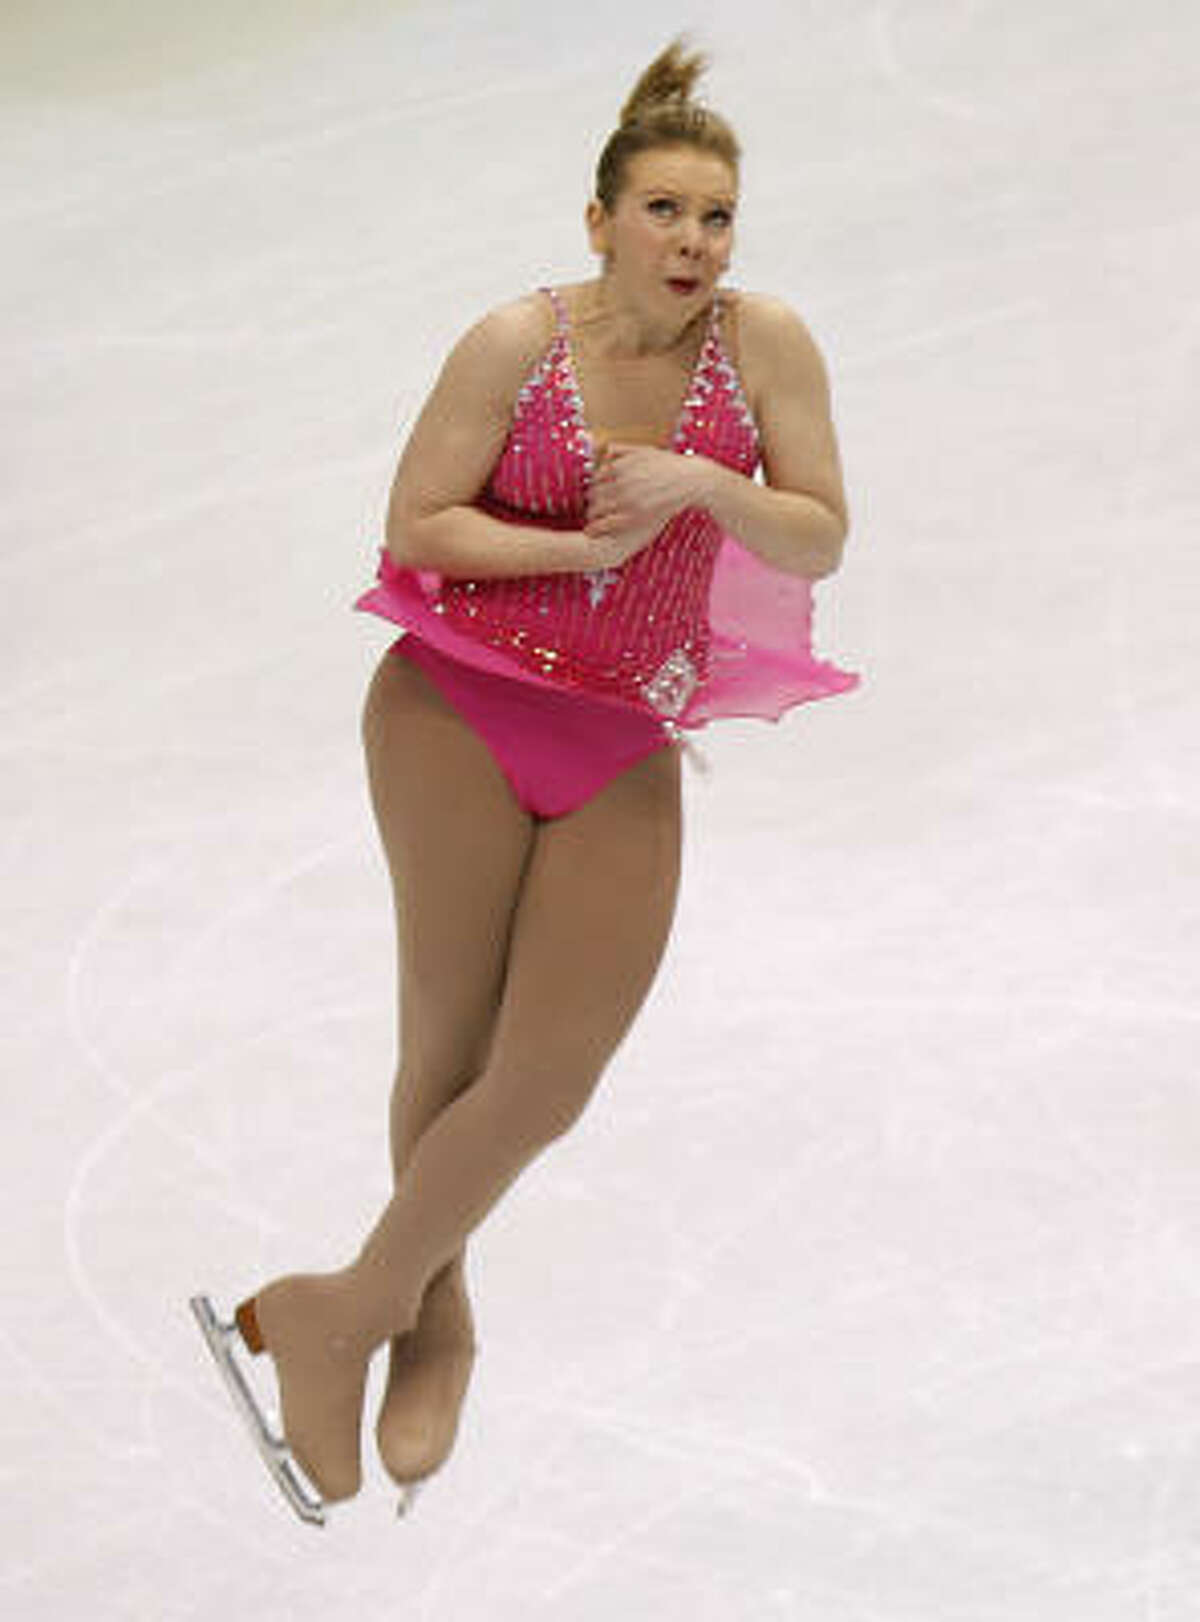 Rachael Flatt of the United States skates in the short program of the women's figure skating competition.